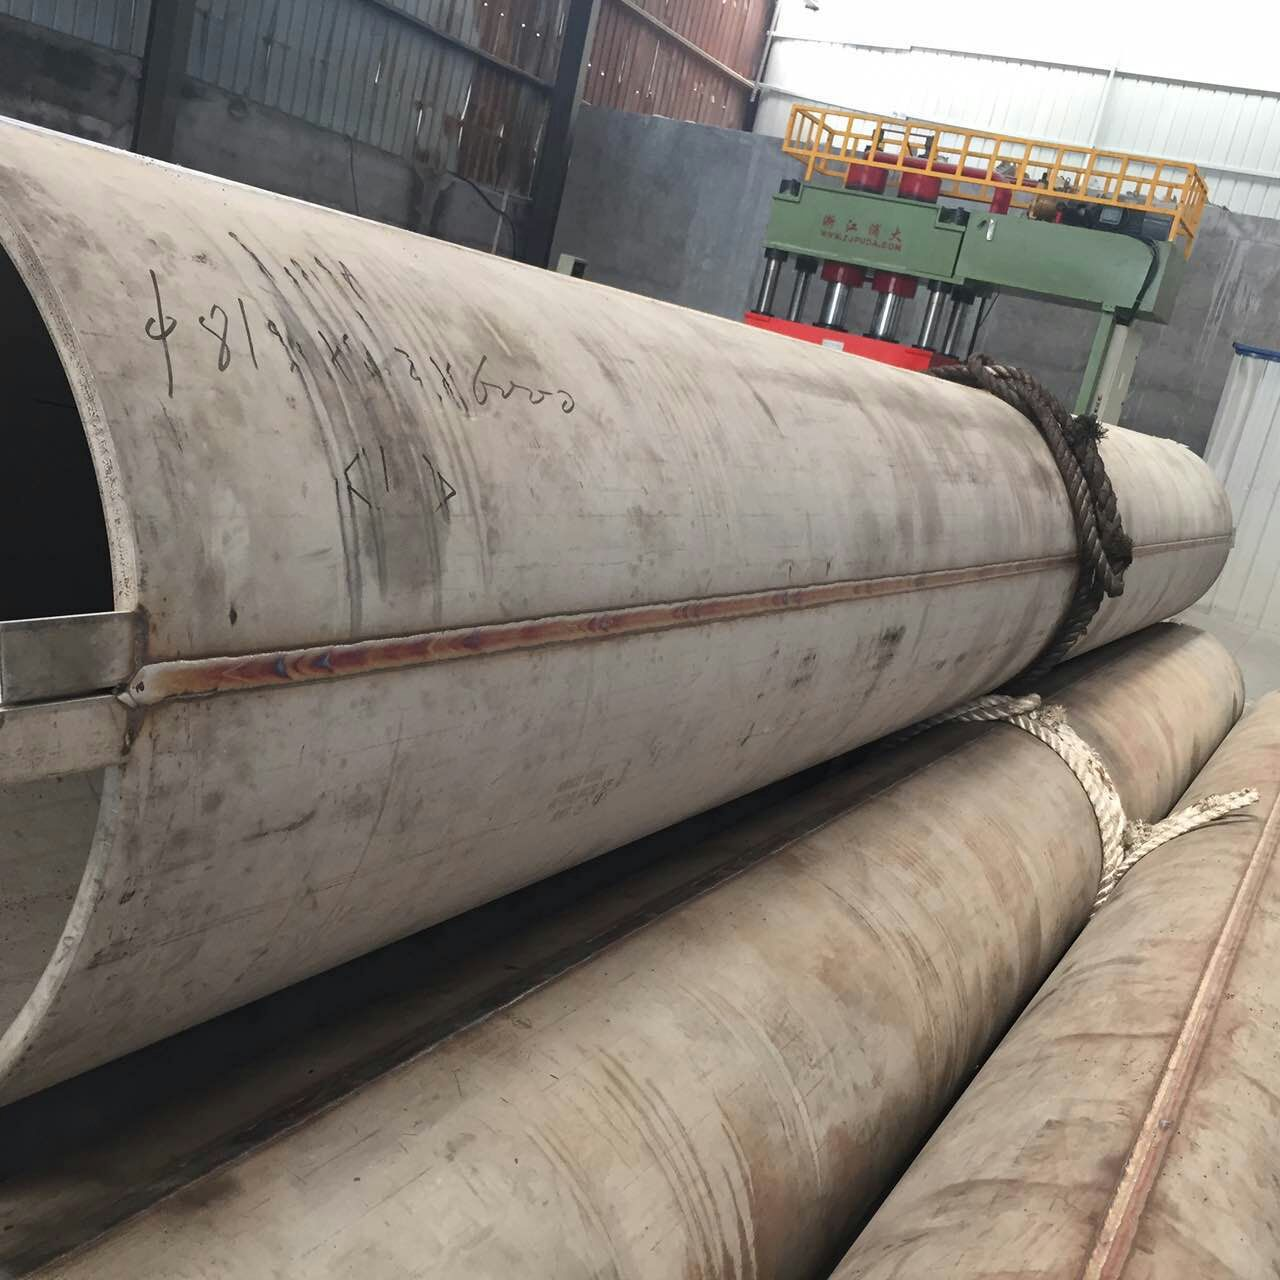 LSAW STAINLESS PIPE EFW BE 813*17.48mm Wall Thickness ASTMA358 GR.TP304 CL5